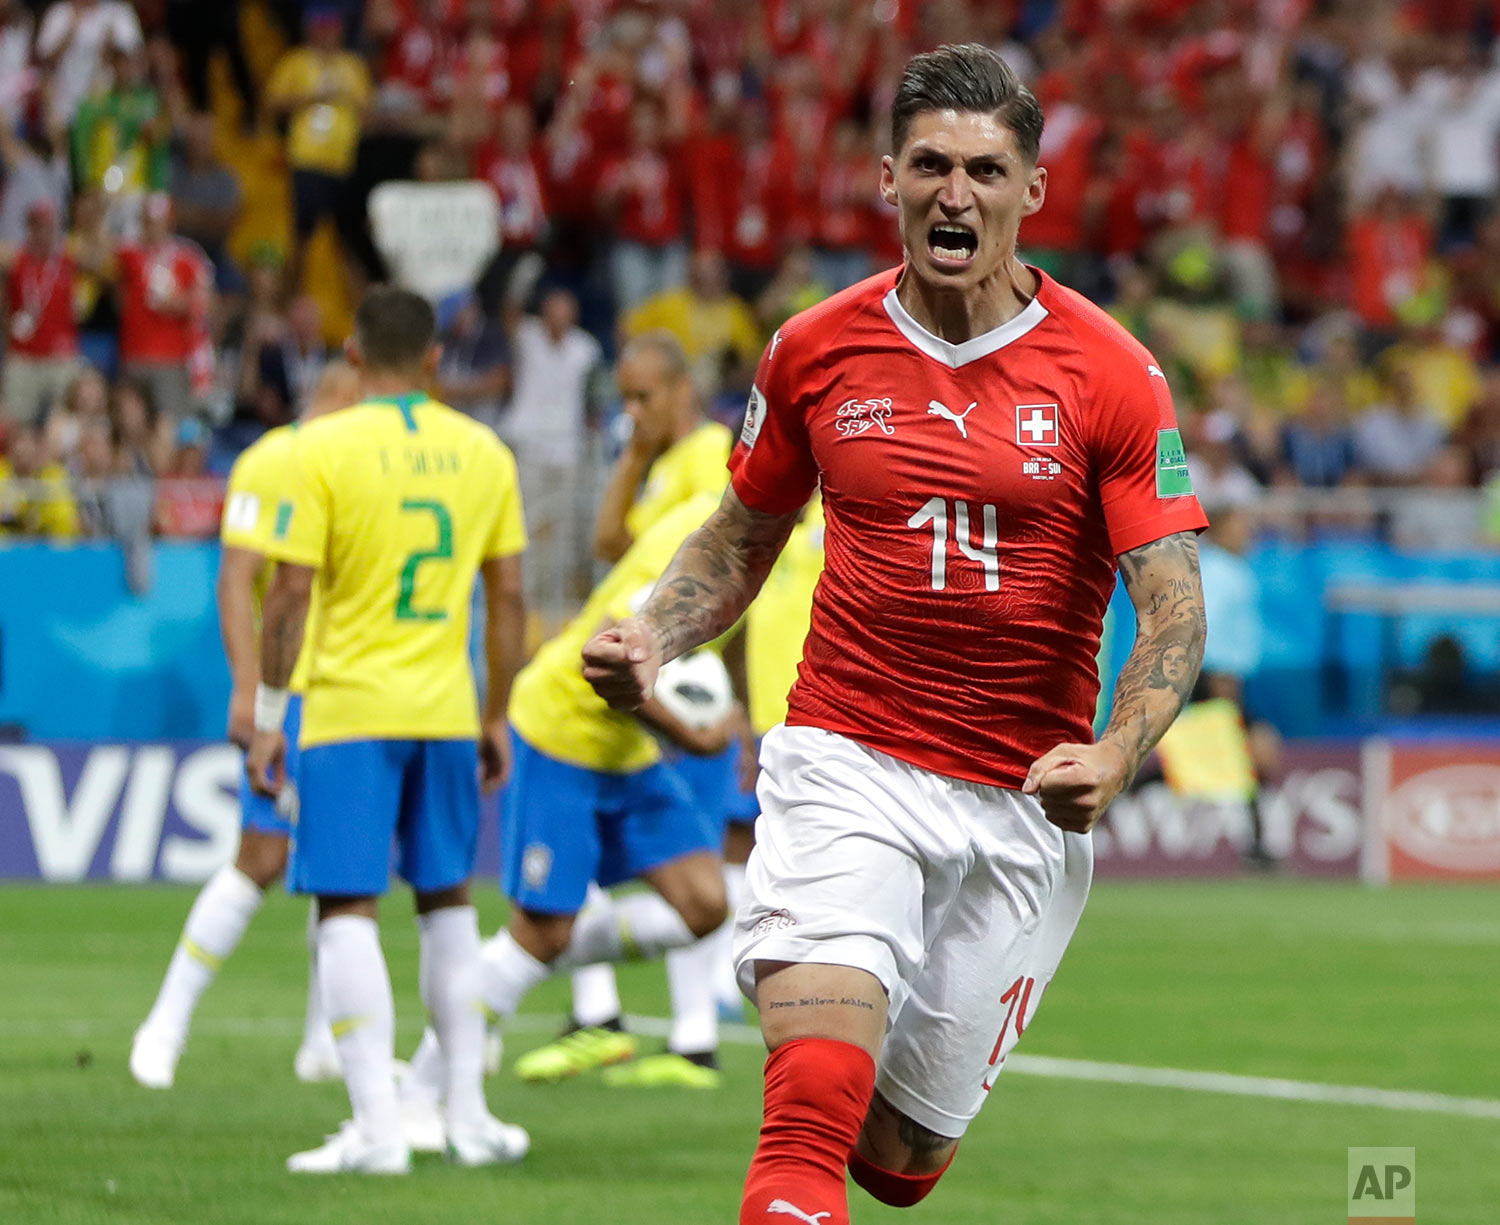 Switzerland's Steven Zuber celebrates after scoring his side's opening goal during the group E match between Brazil and Switzerland at the 2018 soccer World Cup in the Rostov Arena in Rostov-on-Don, Russia, Sunday, June 17, 2018. (AP Photo/Themba Hadebe)